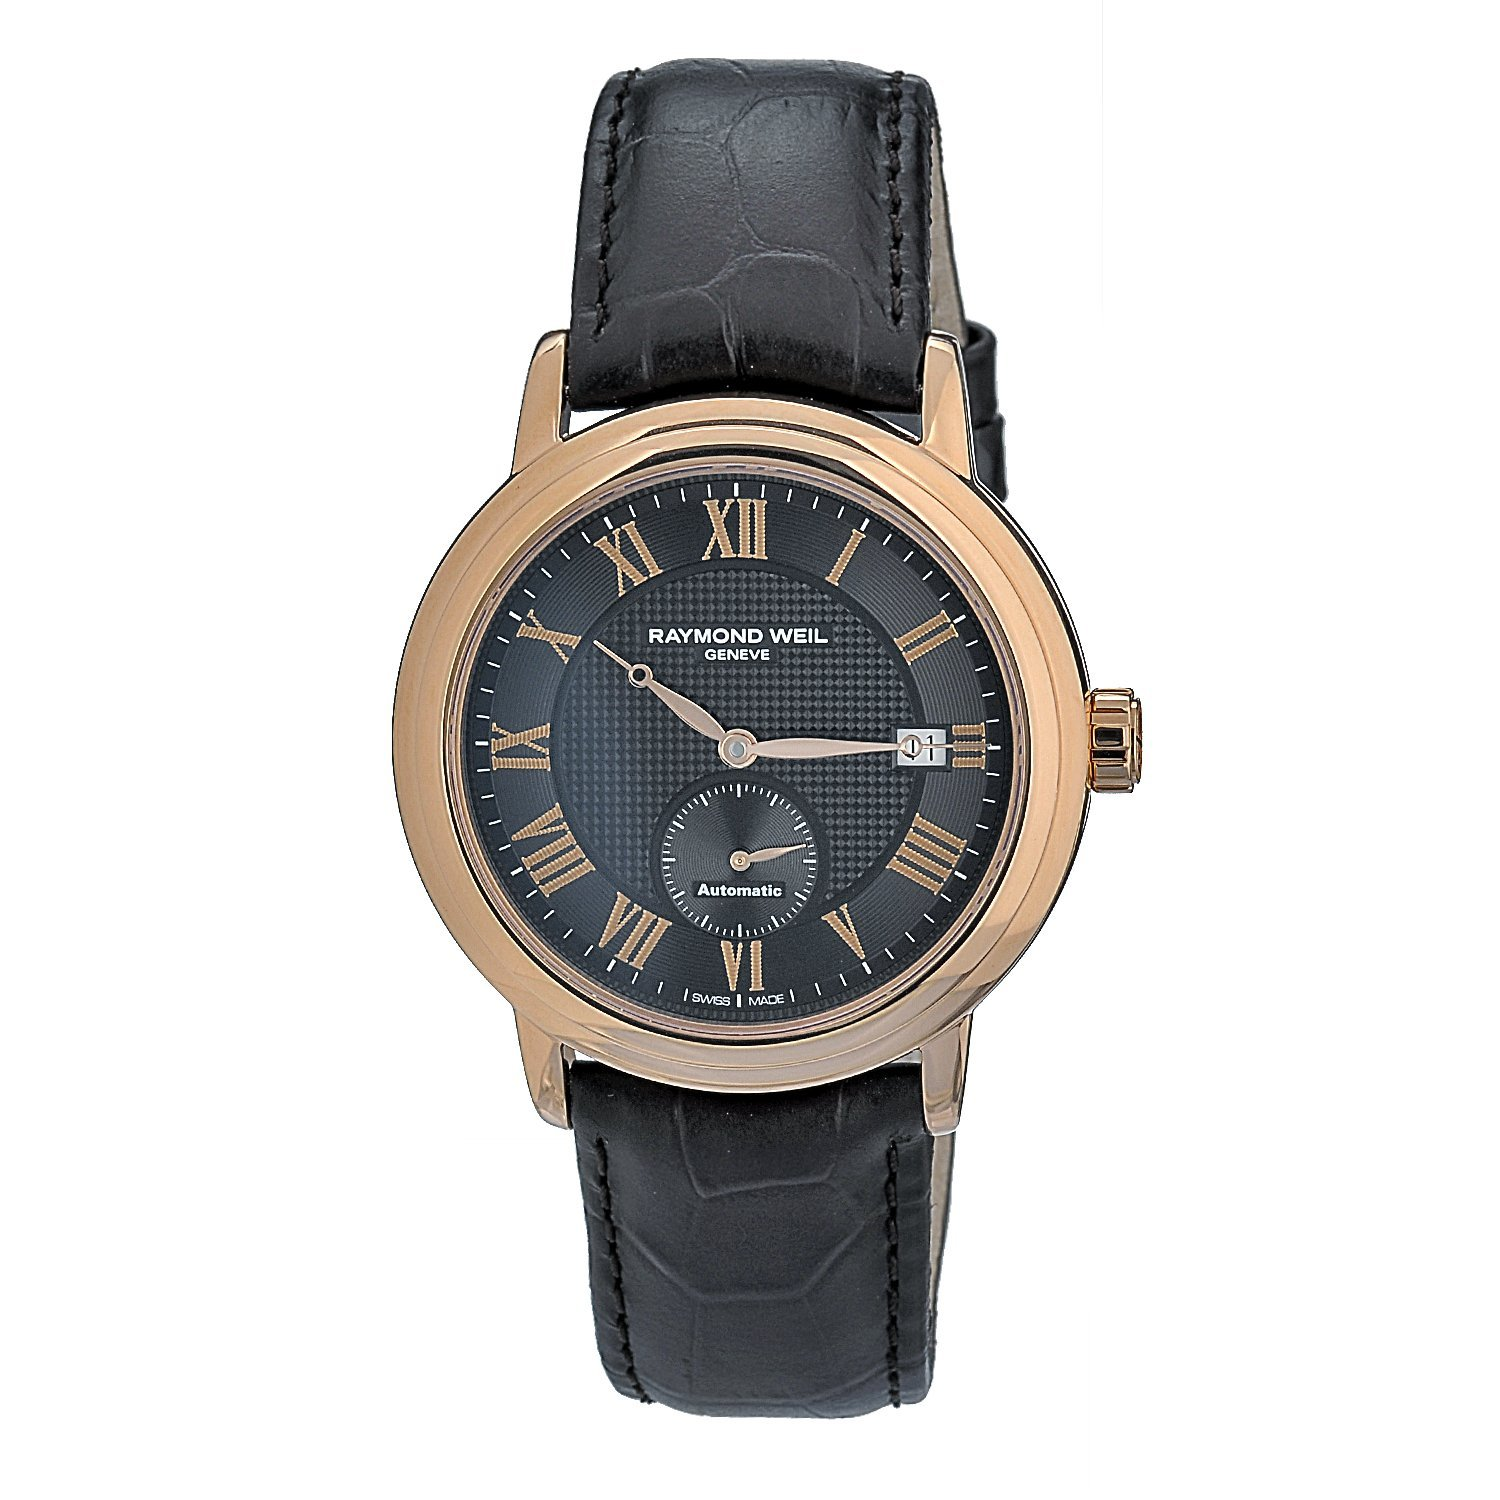 Raymond Weil Men's Automatic Leather Strap Two-tone Watch